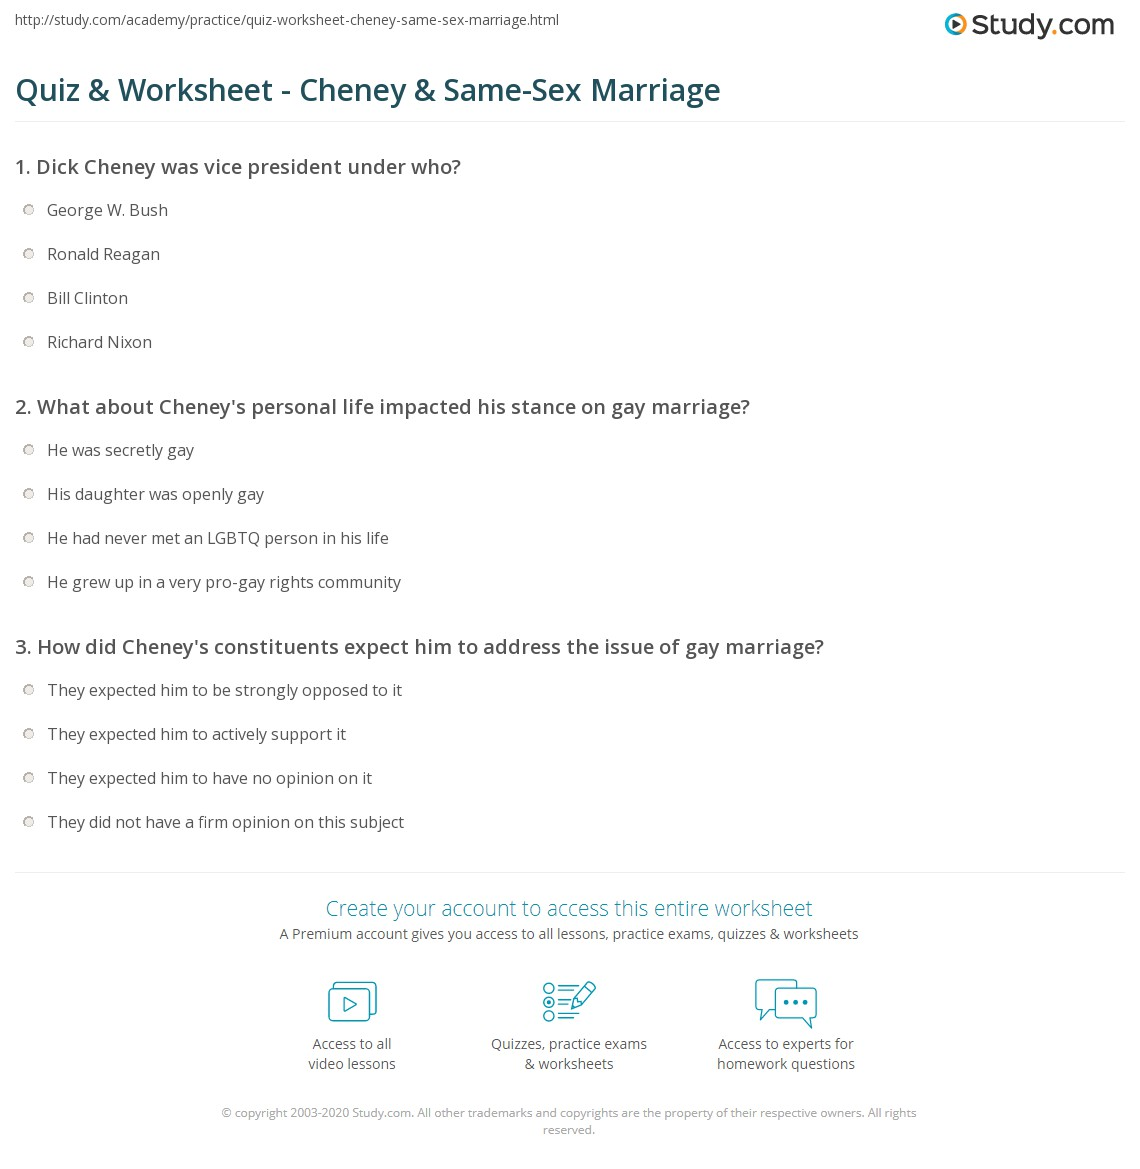 Sex marraige quiz